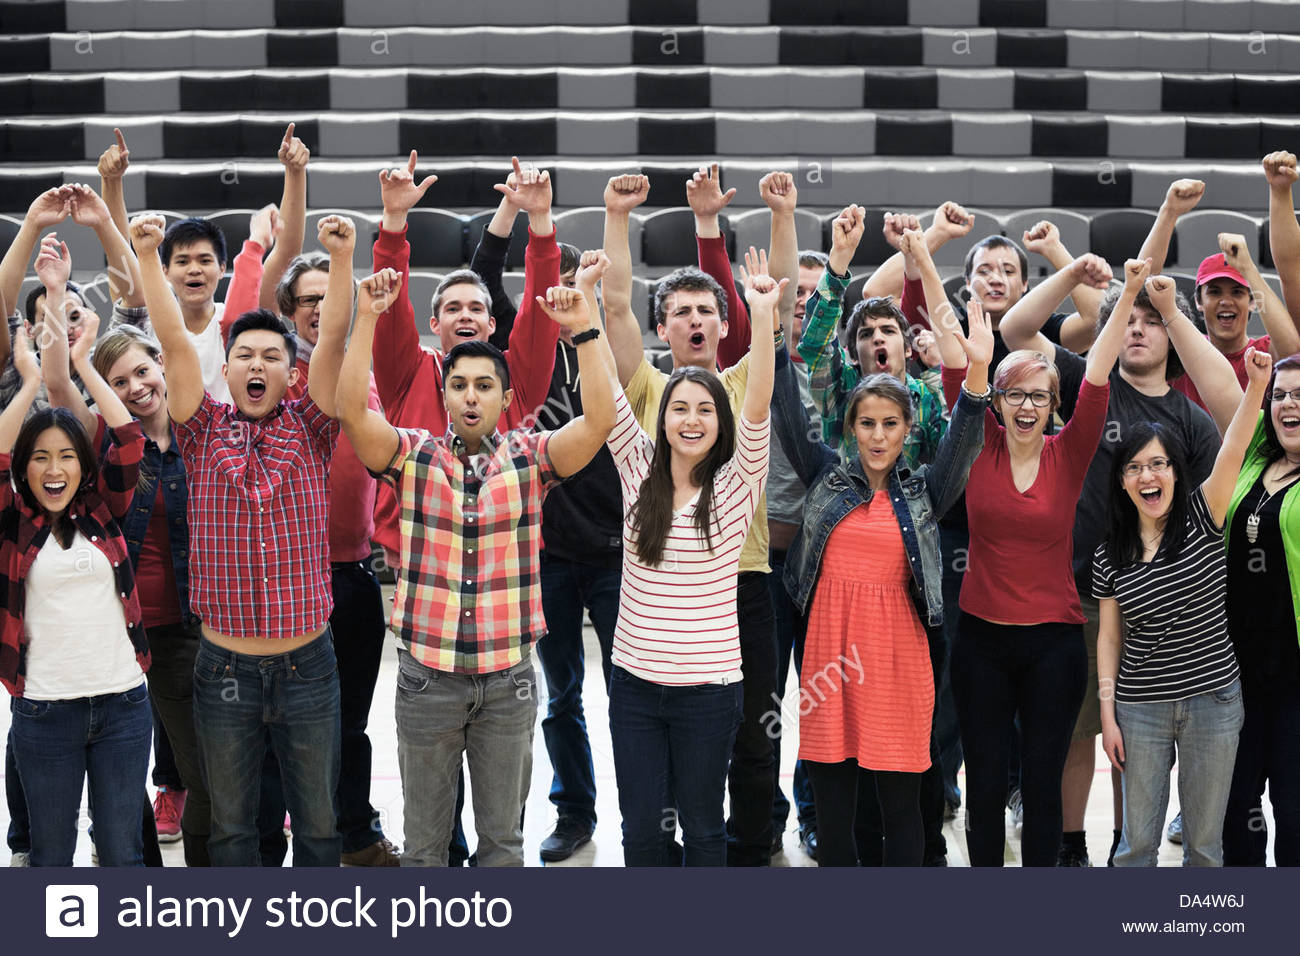 Portrait of large group of students cheering at college sporting event - Stock Image